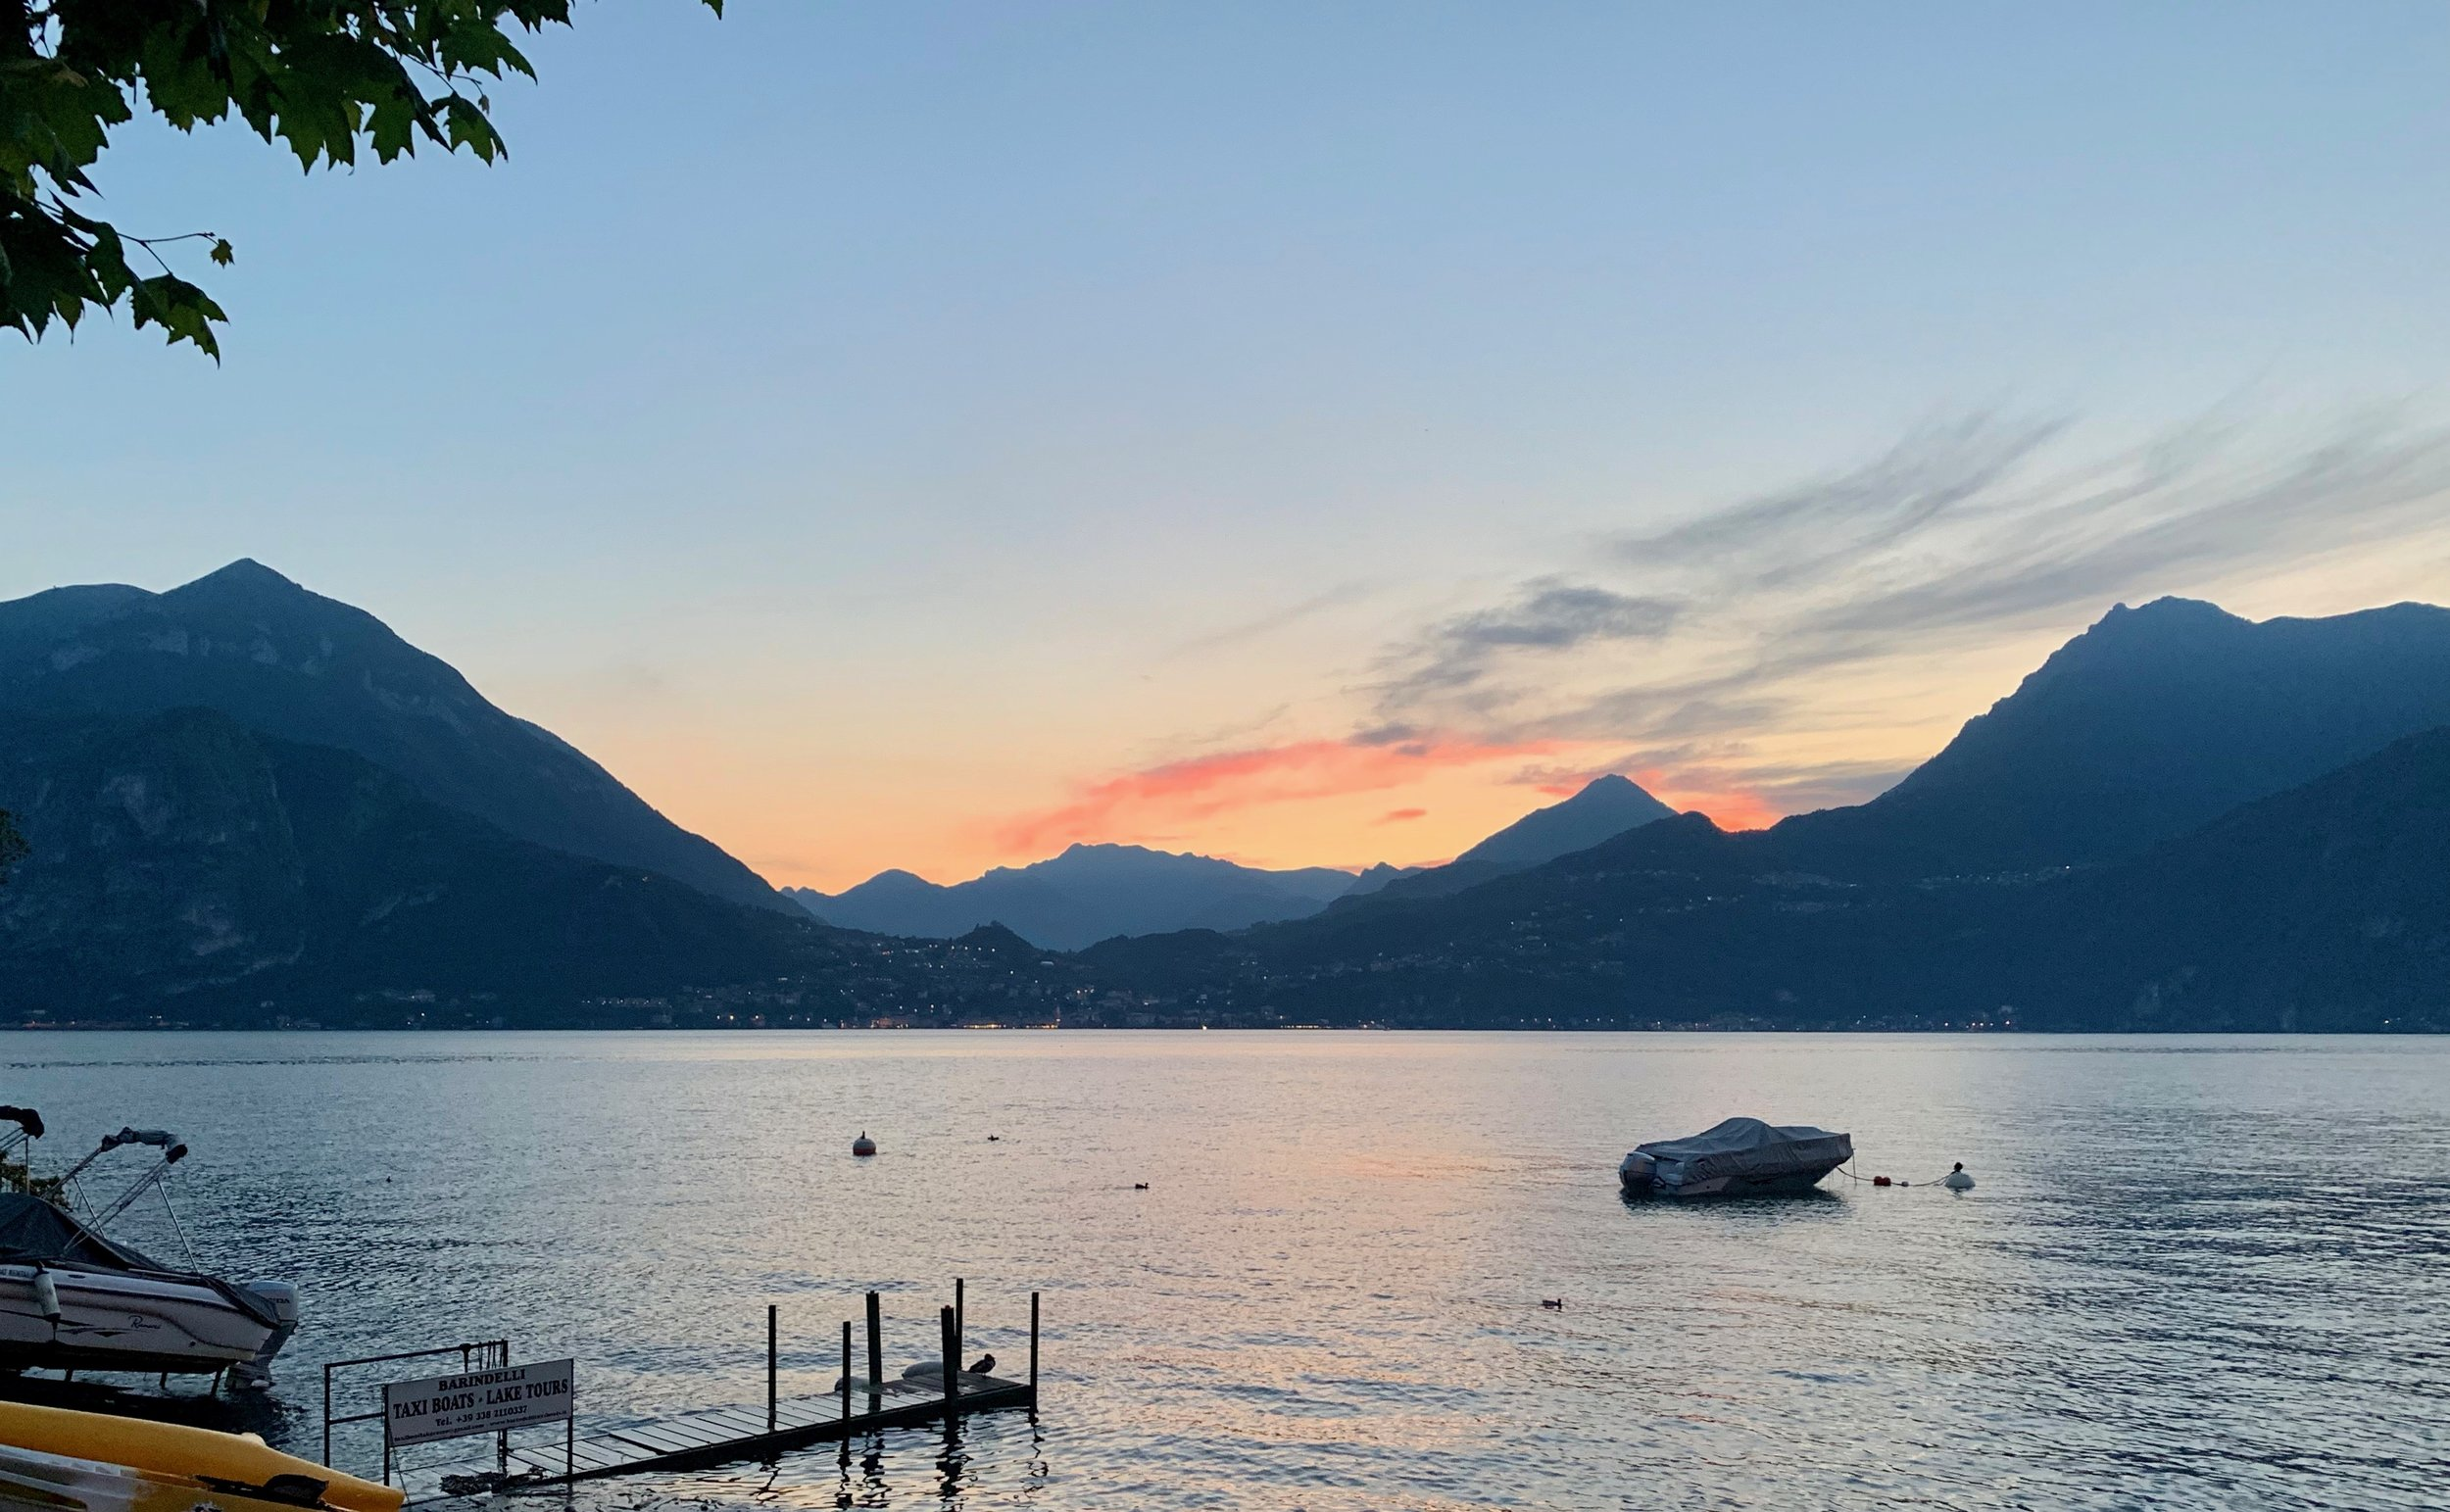 Lake Como is surrounded by the base of the Alps. The drama of the area was intoxicating.   Inspiration take away  — Gratitude to the Creator.